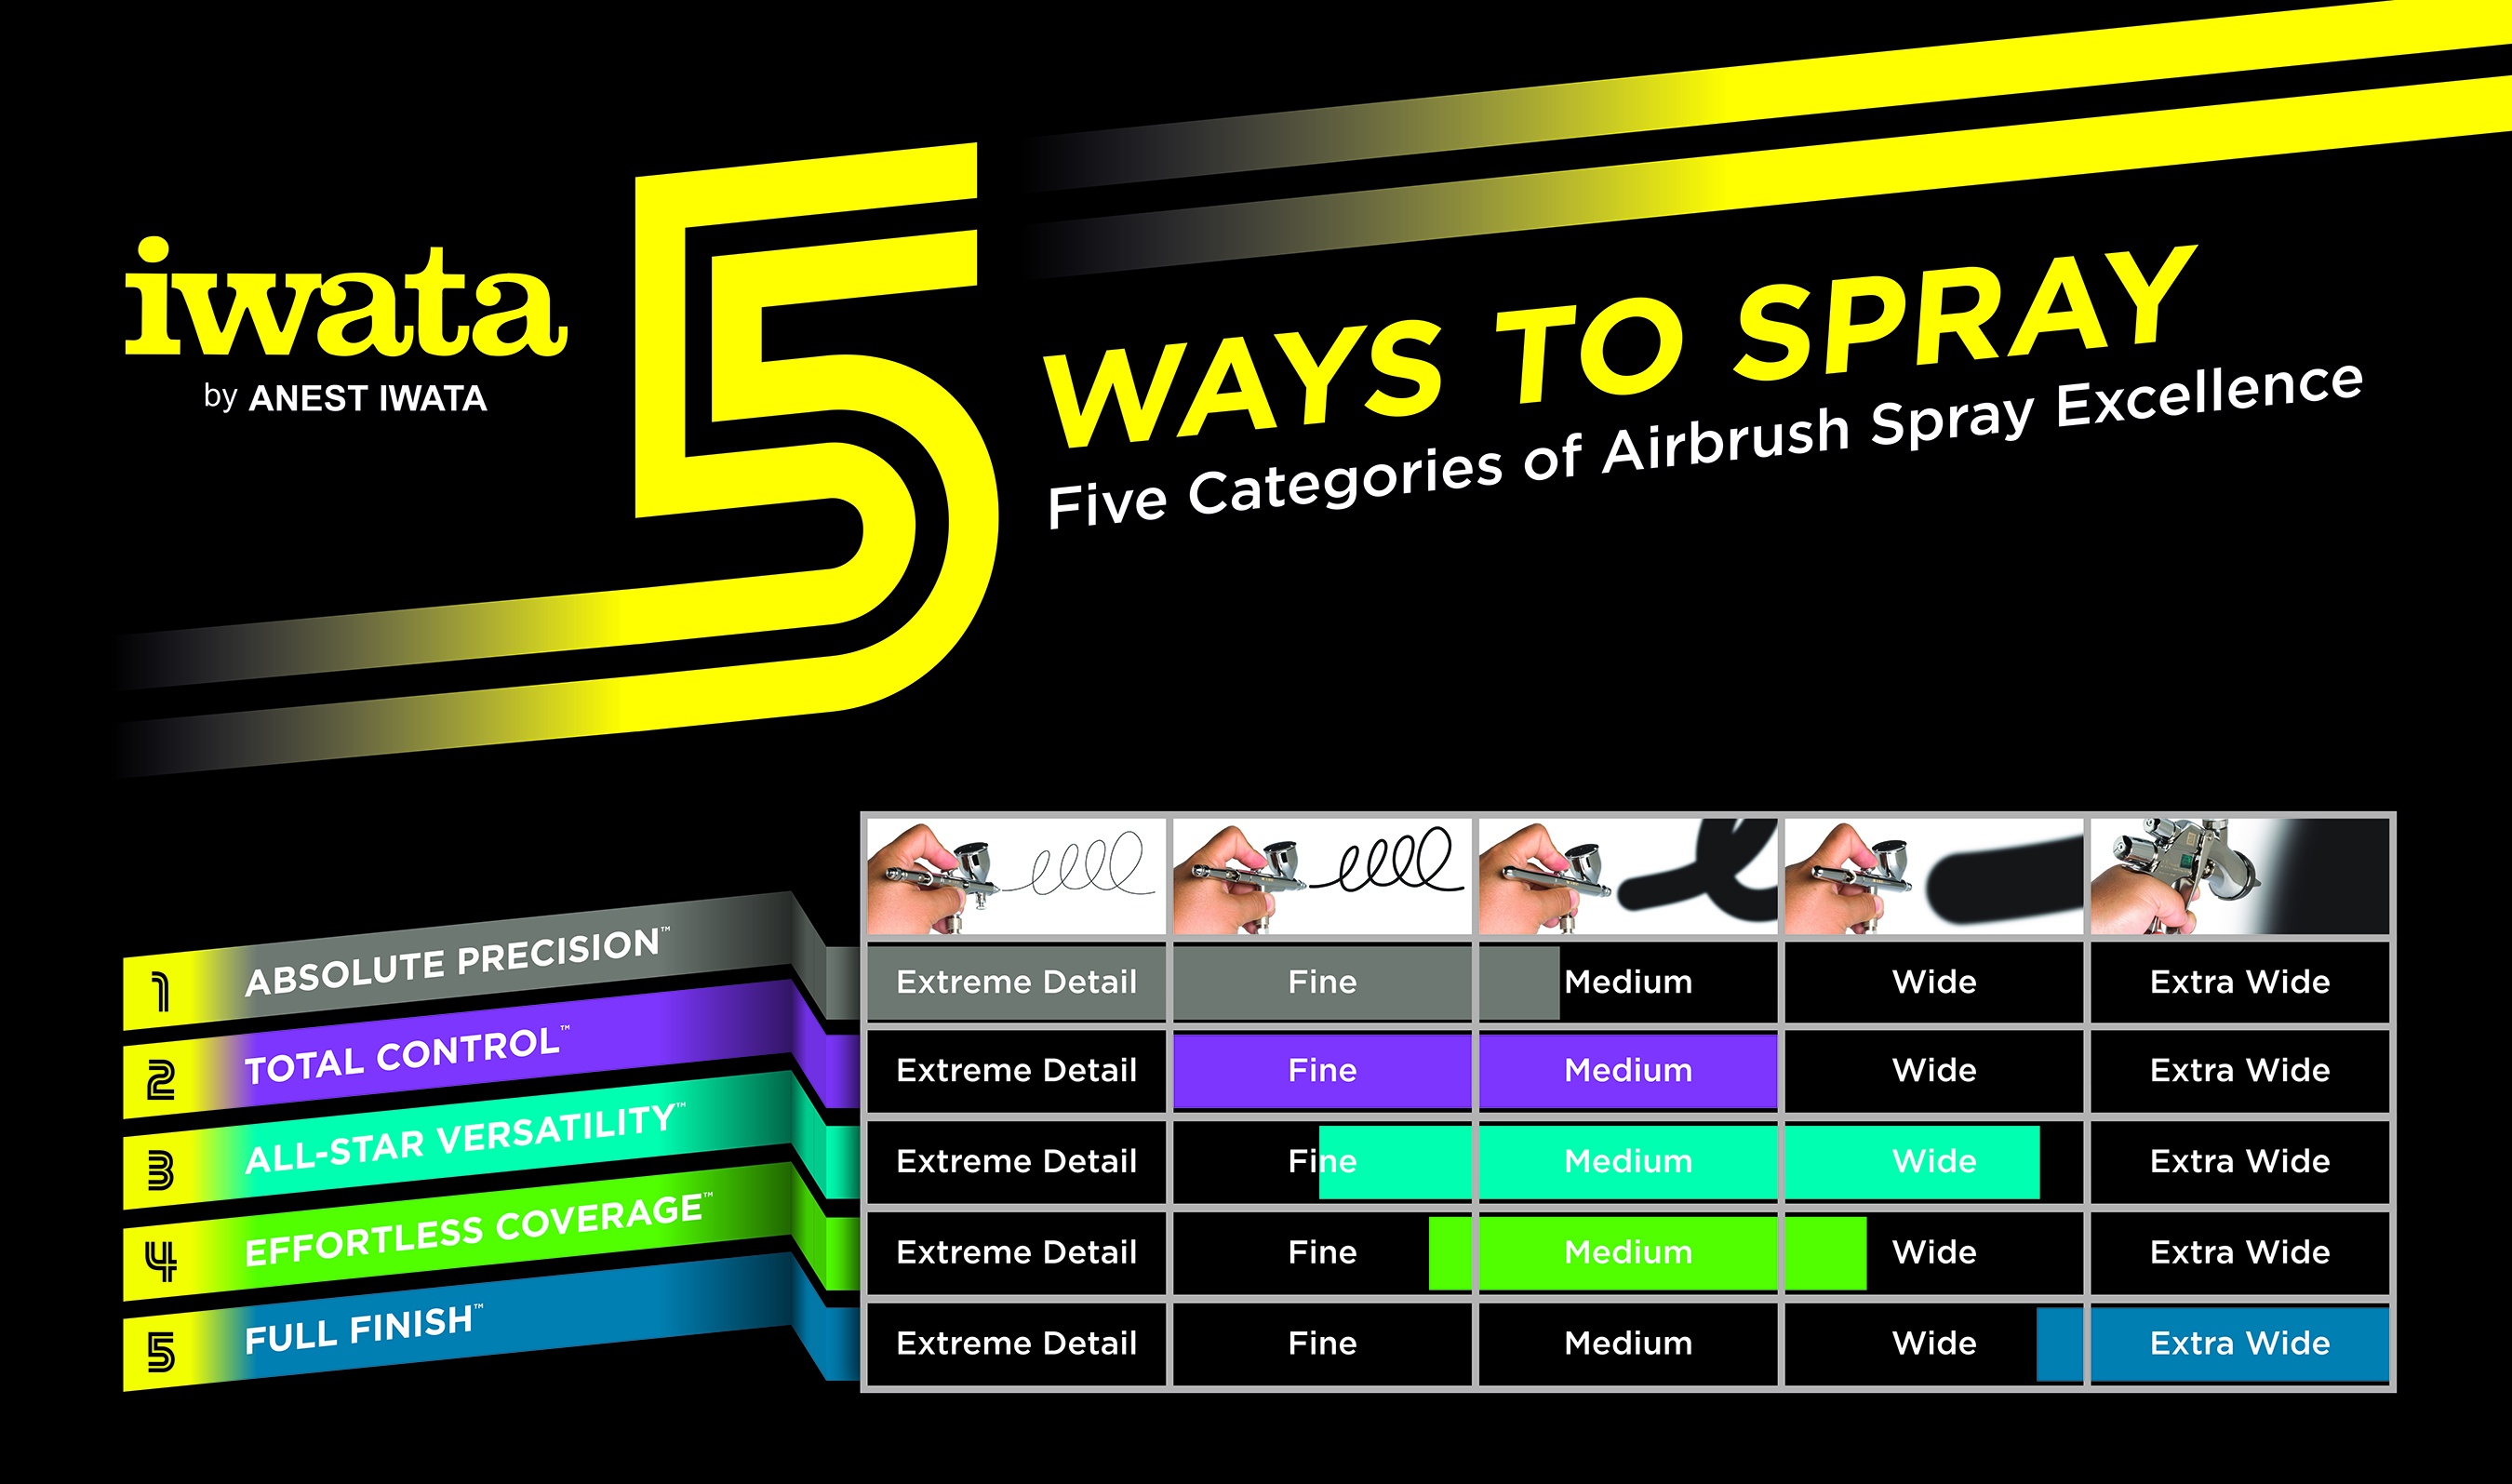 Iwatas neuer Airbrush-Guide: 5 ways to spray